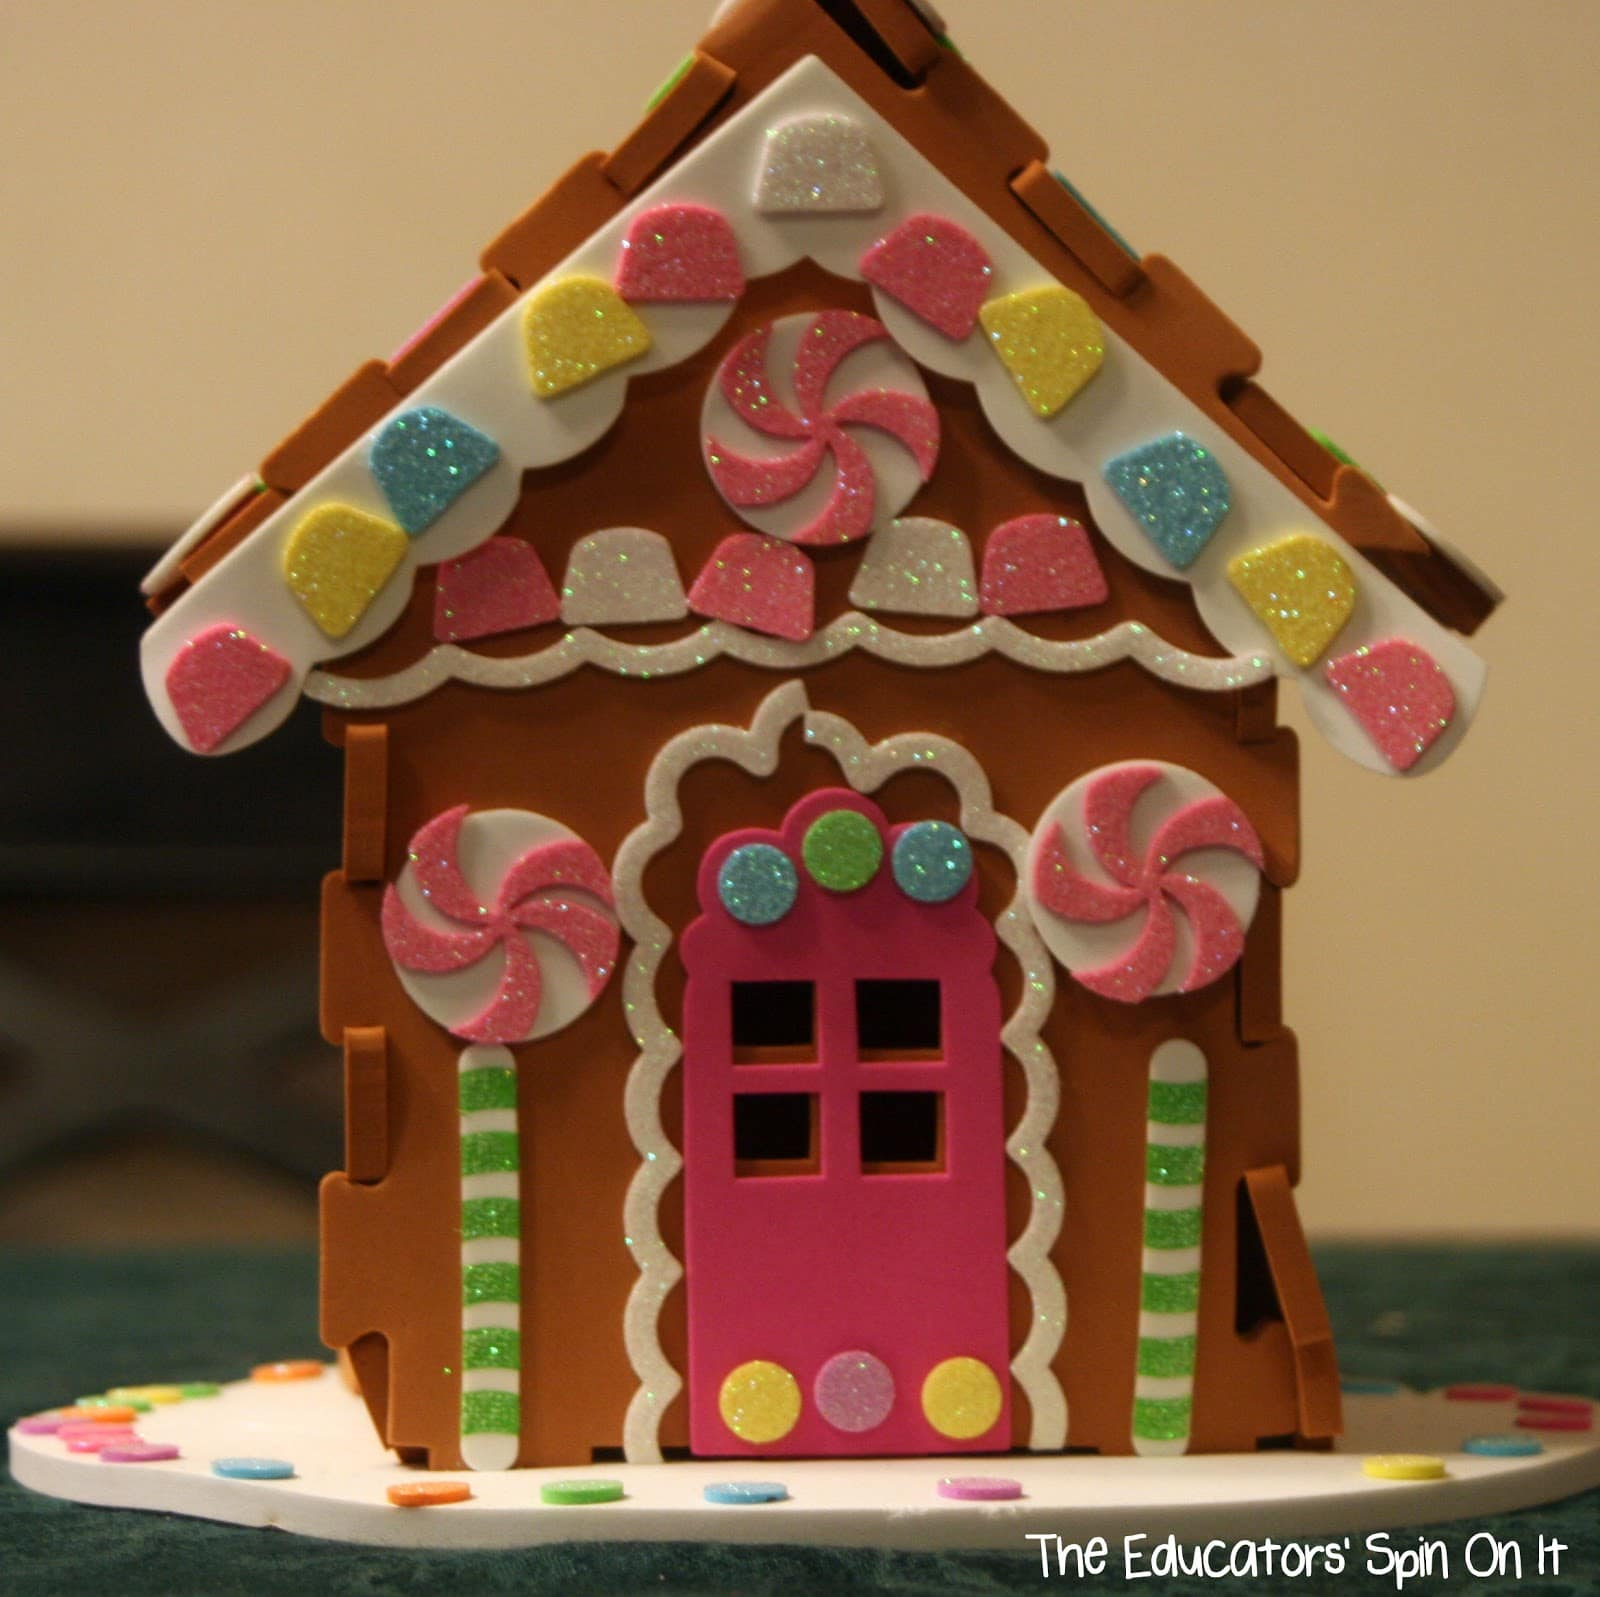 Make Your Own Life Size Gingerbread House For Kids